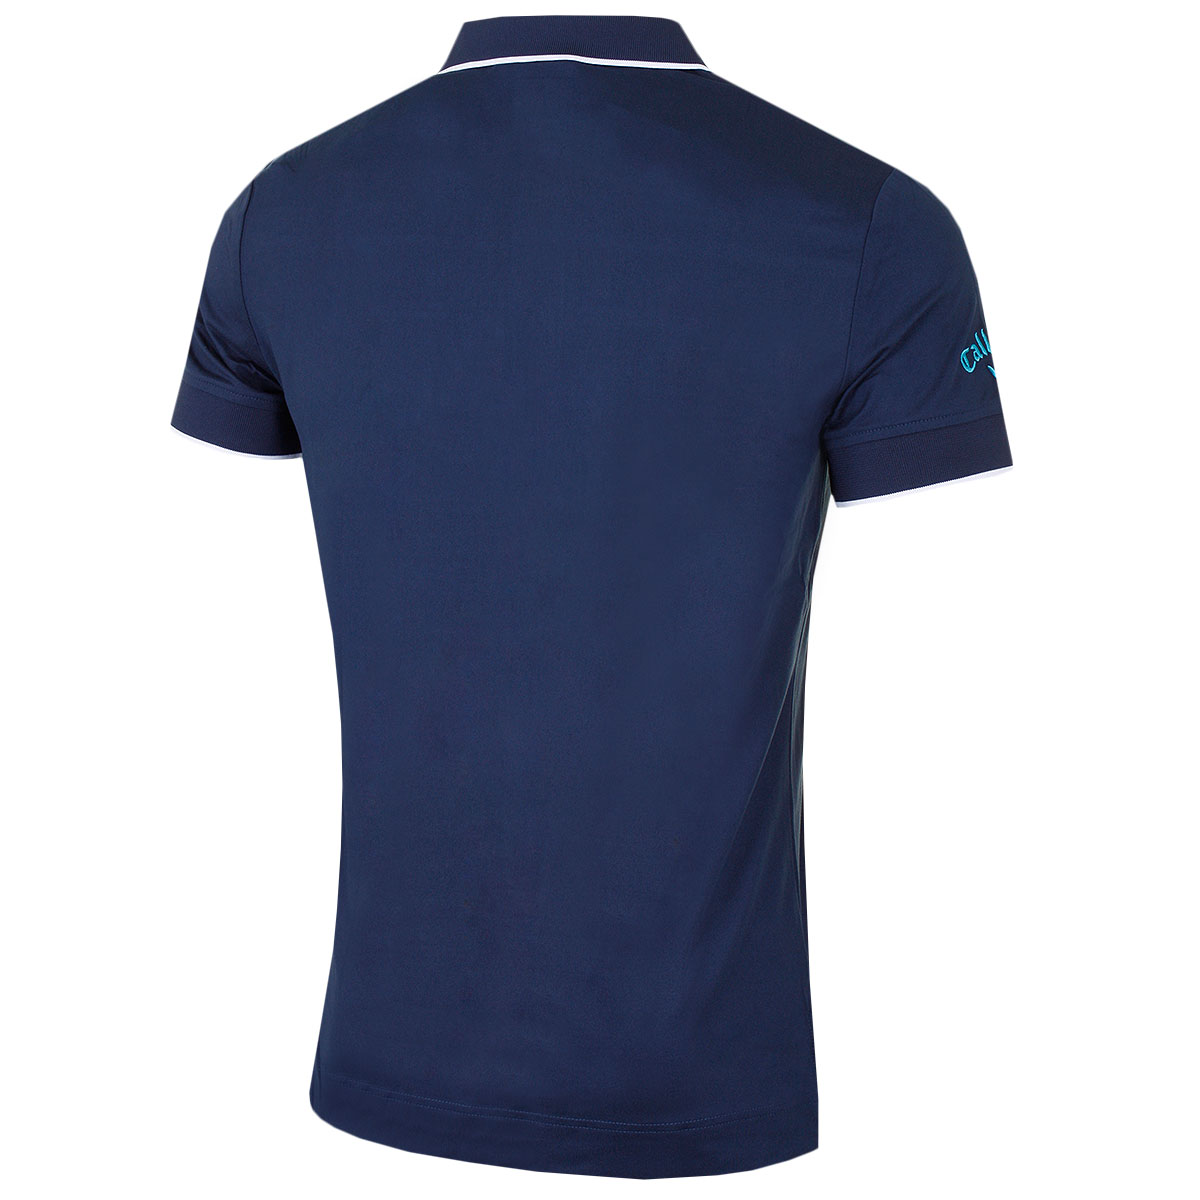 Callaway-Golf-Mens-X-Range-Stretch-Chest-Piped-Polo-Shirt-60-OFF-RRP thumbnail 9